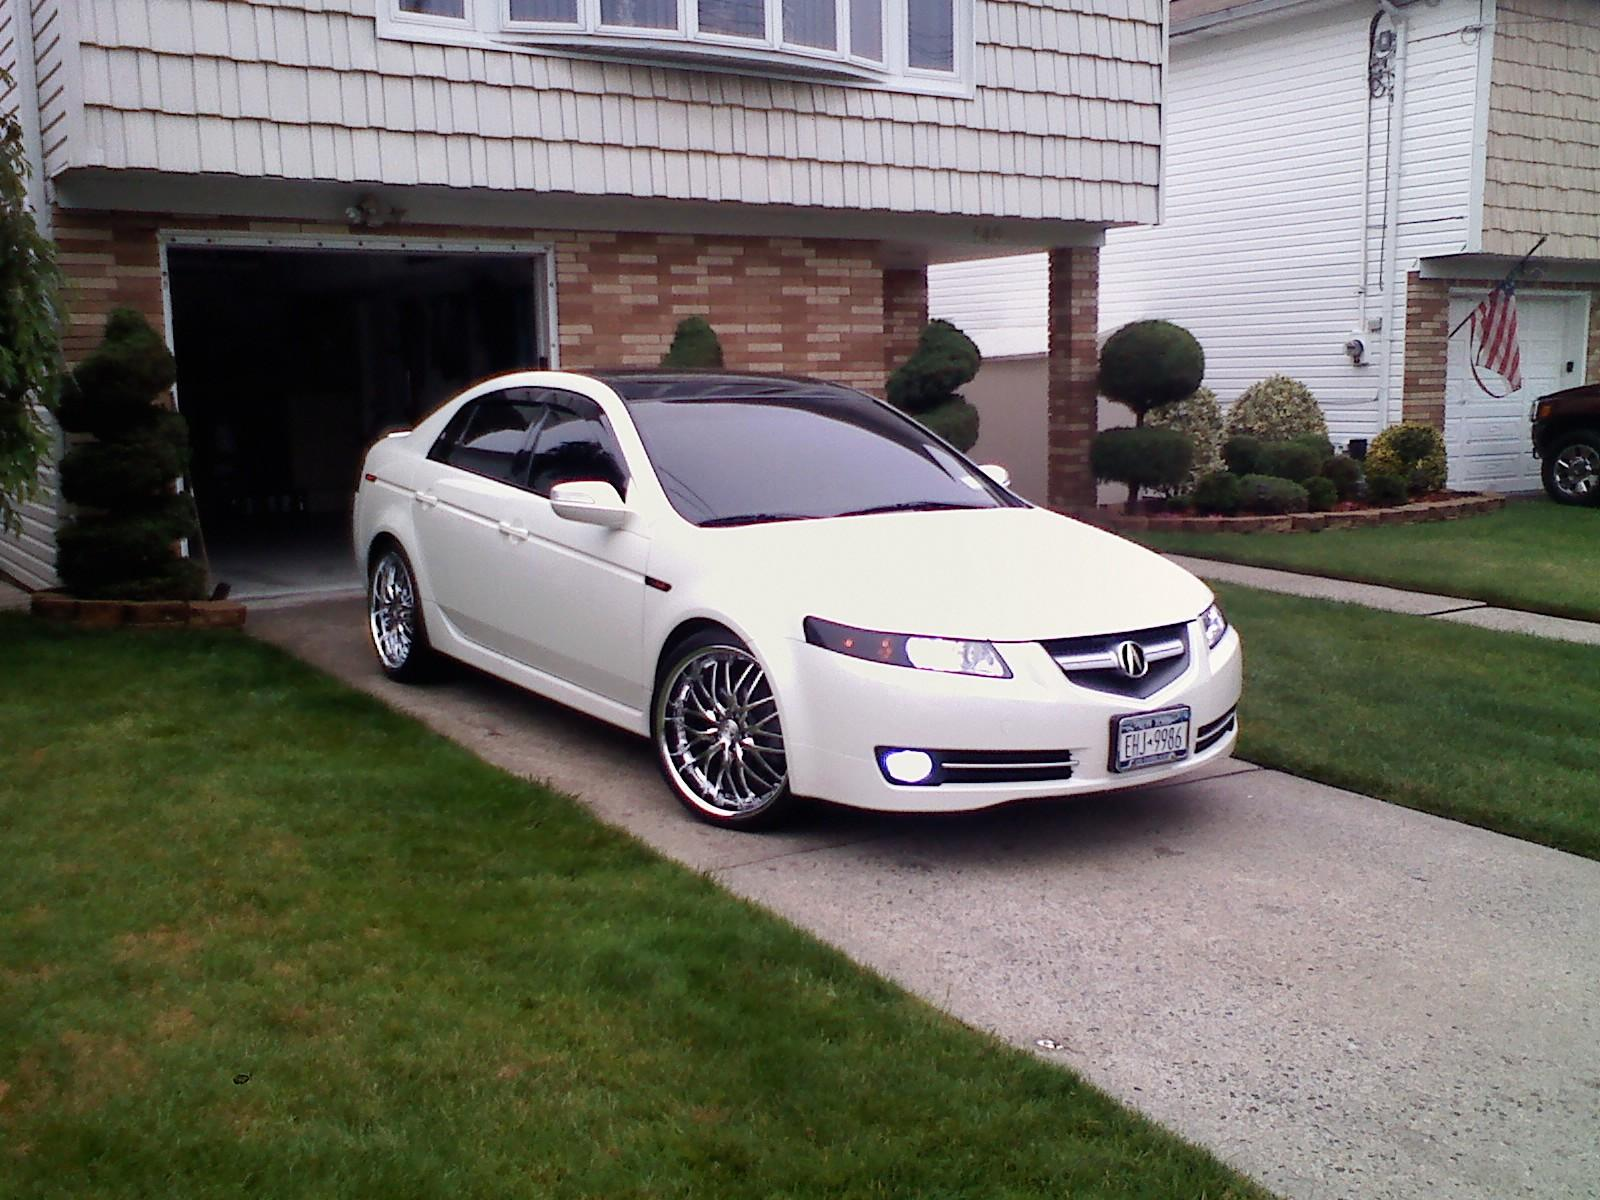 tl21ceayss 2008 acura tl specs photos modification info at cardomain. Black Bedroom Furniture Sets. Home Design Ideas